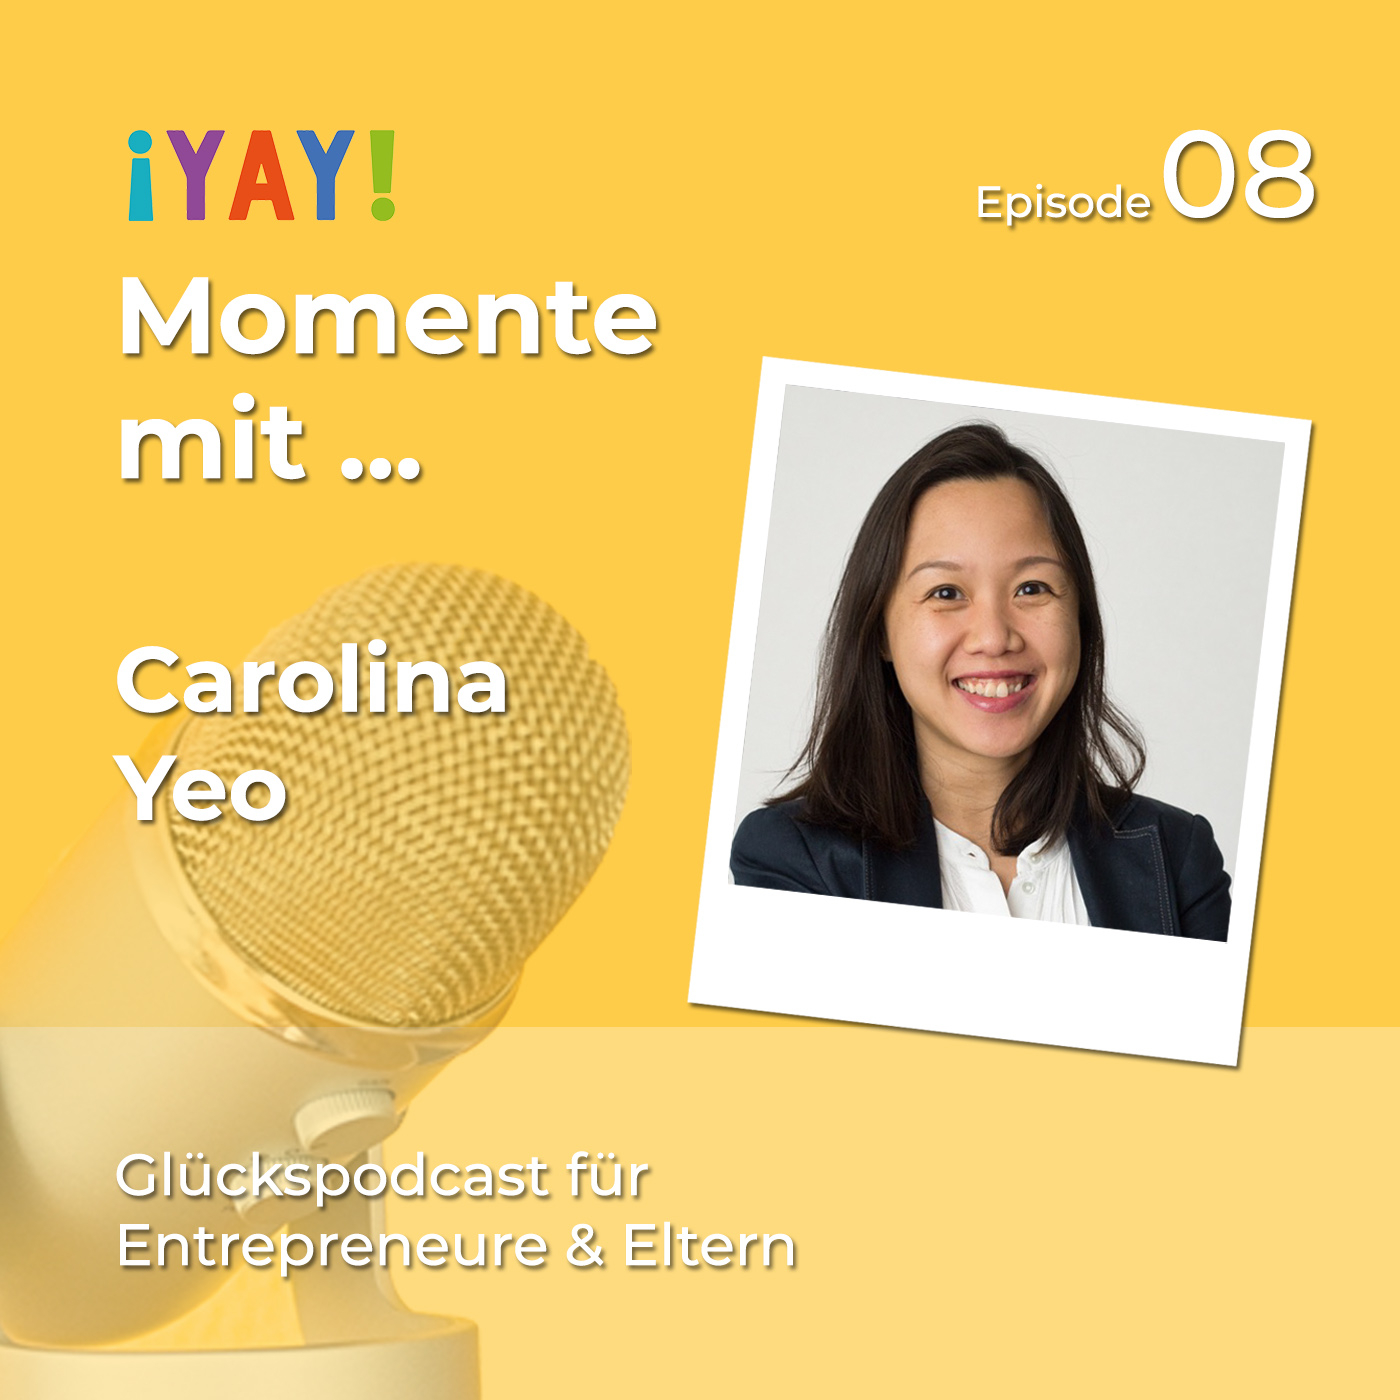 Episode 08: Yay-Momente mit ... Carolina Yeo